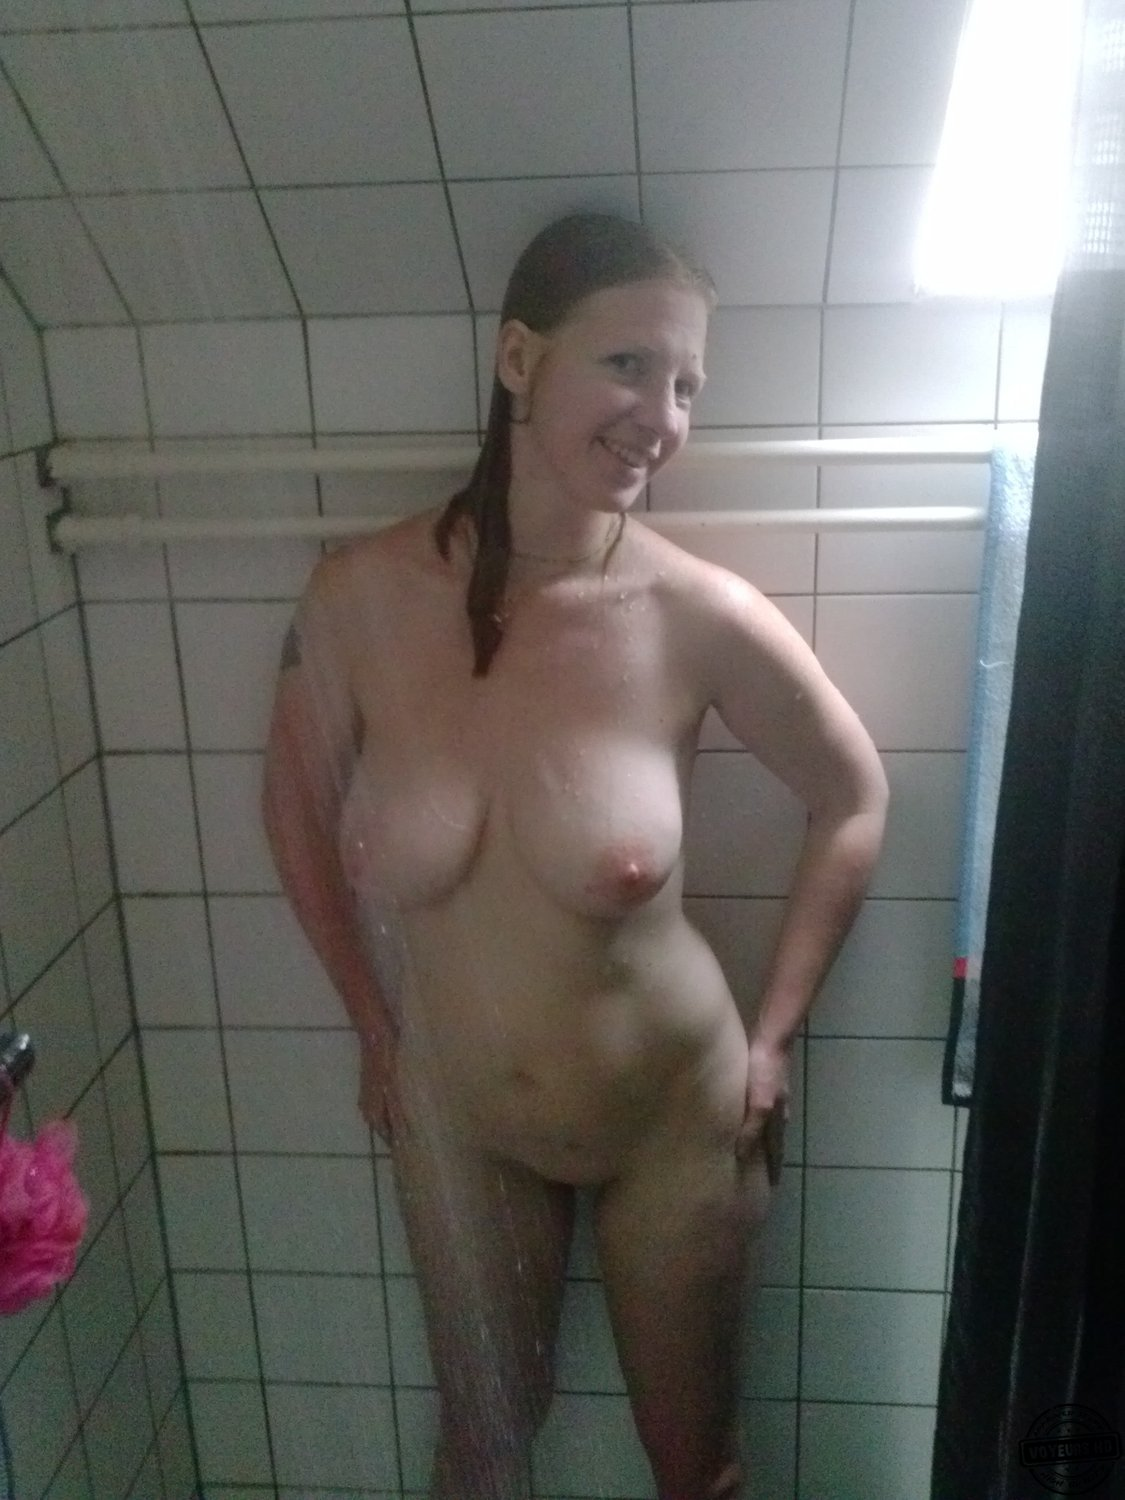 Peeping girl in the toilet 253